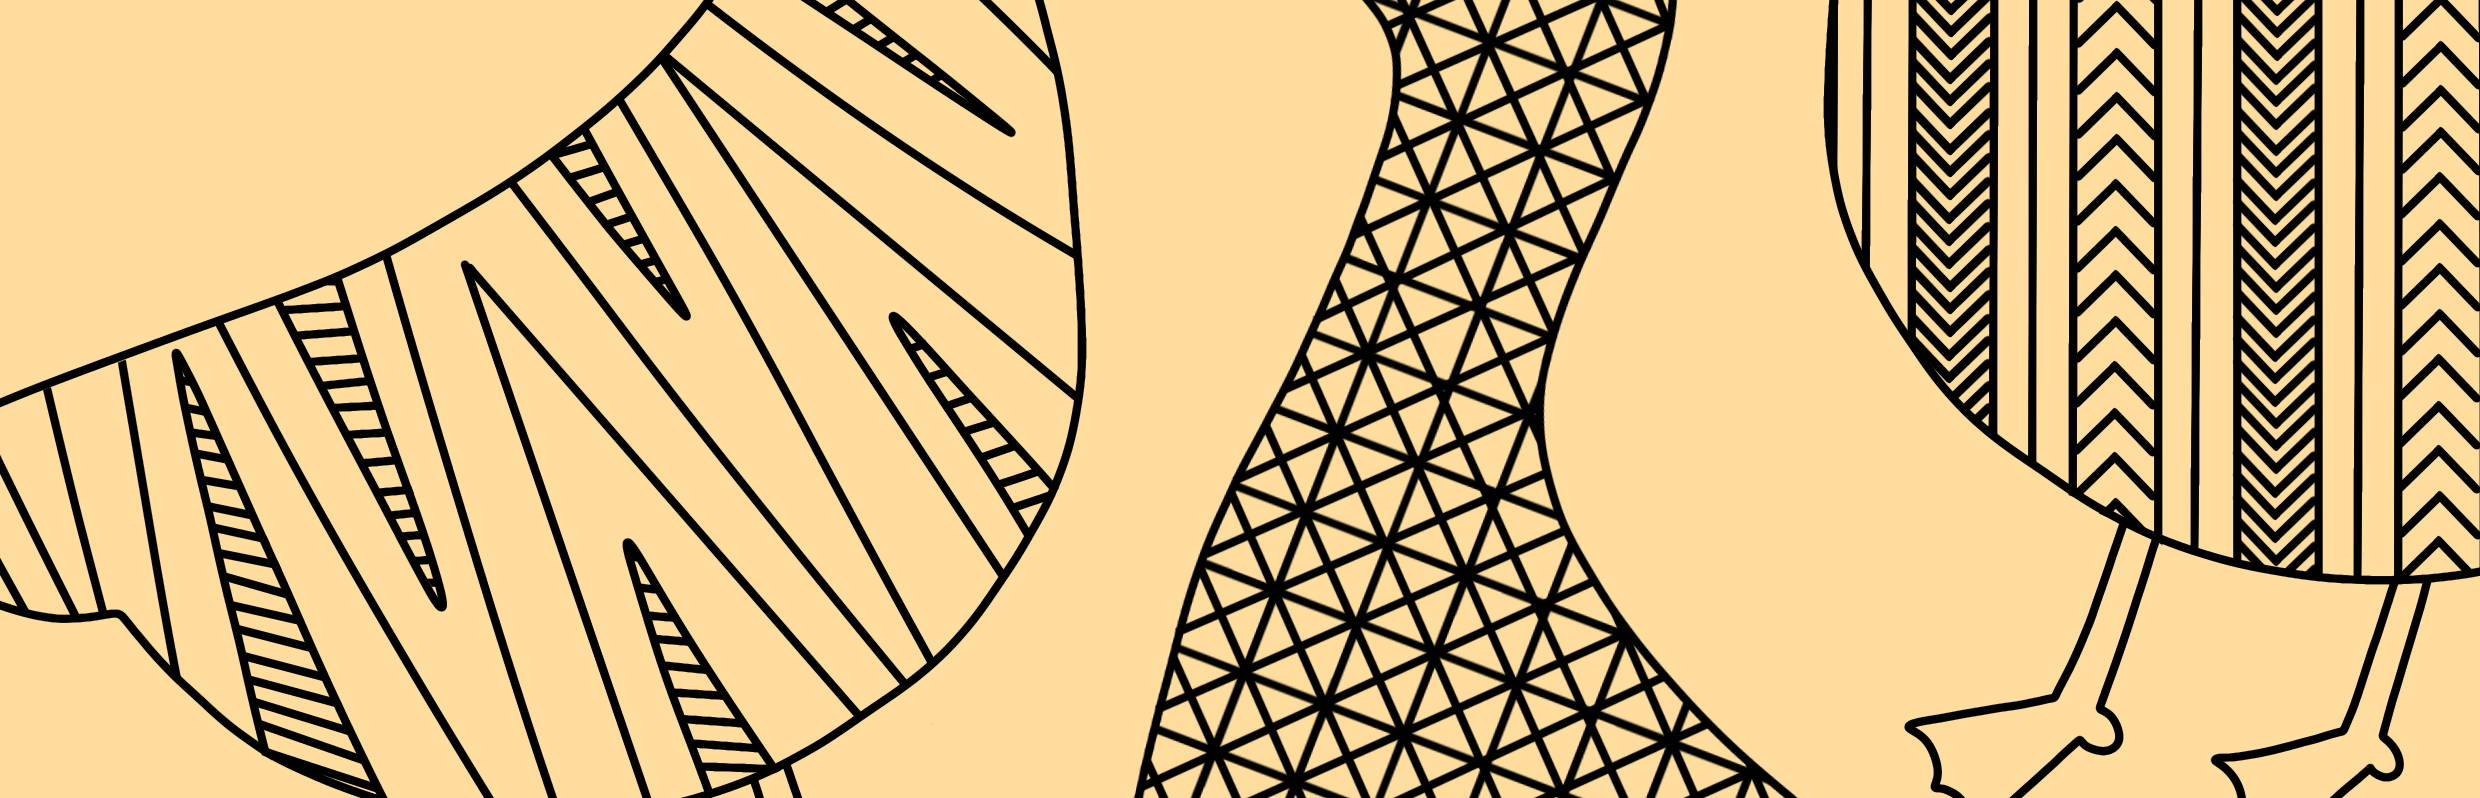 Colouring Pages Banner